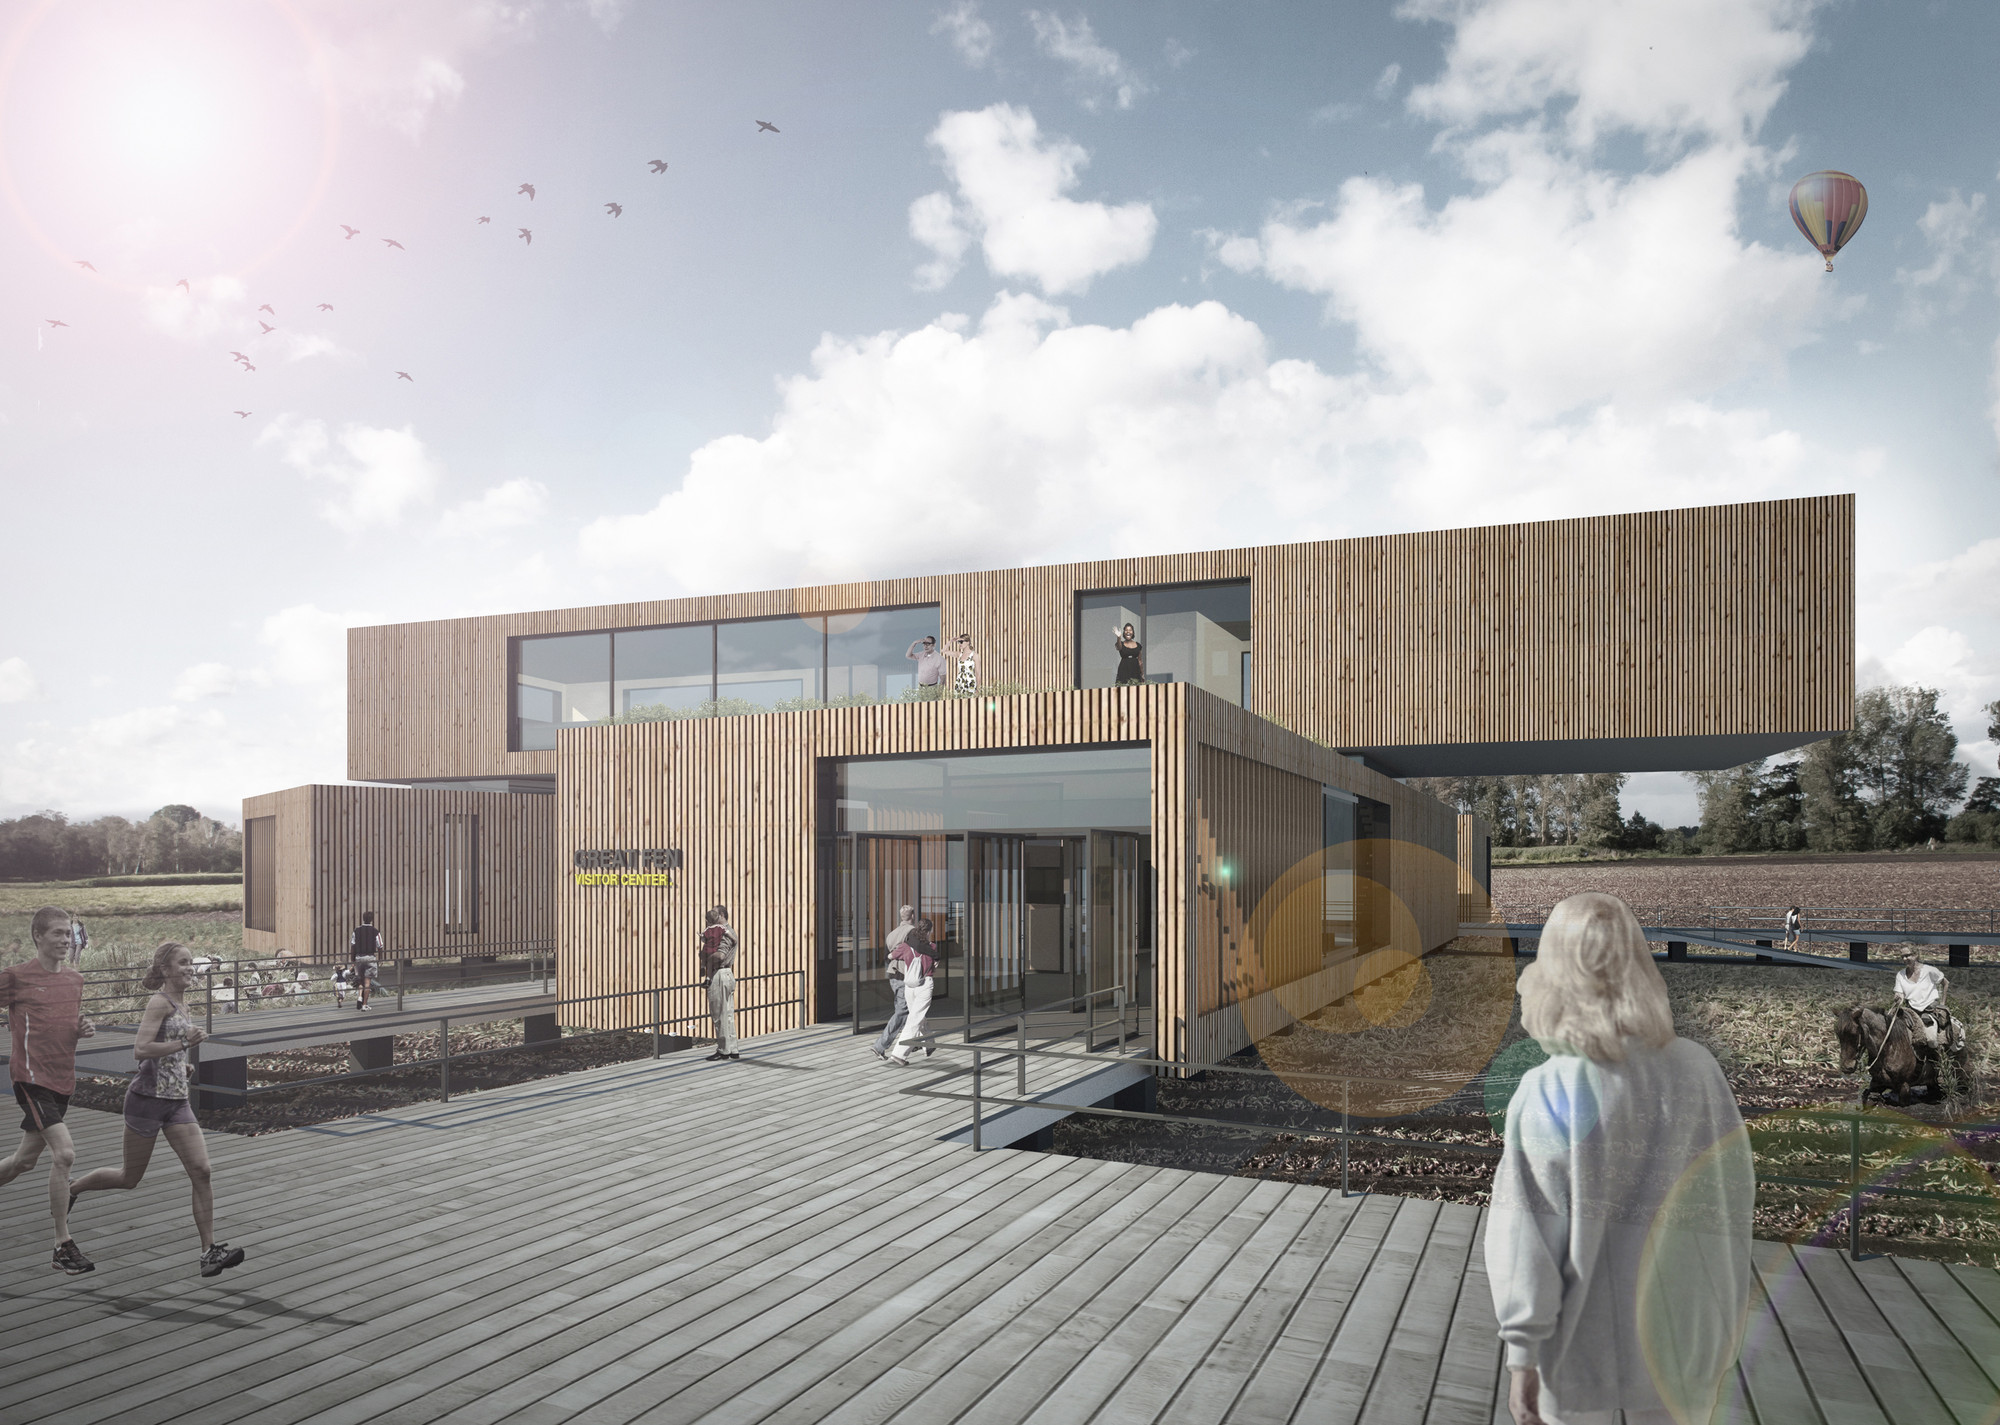 Great Fen Visiting Center Competition Entry / Alexandros Avlonitis + Aggeliki Anagnostopoulou